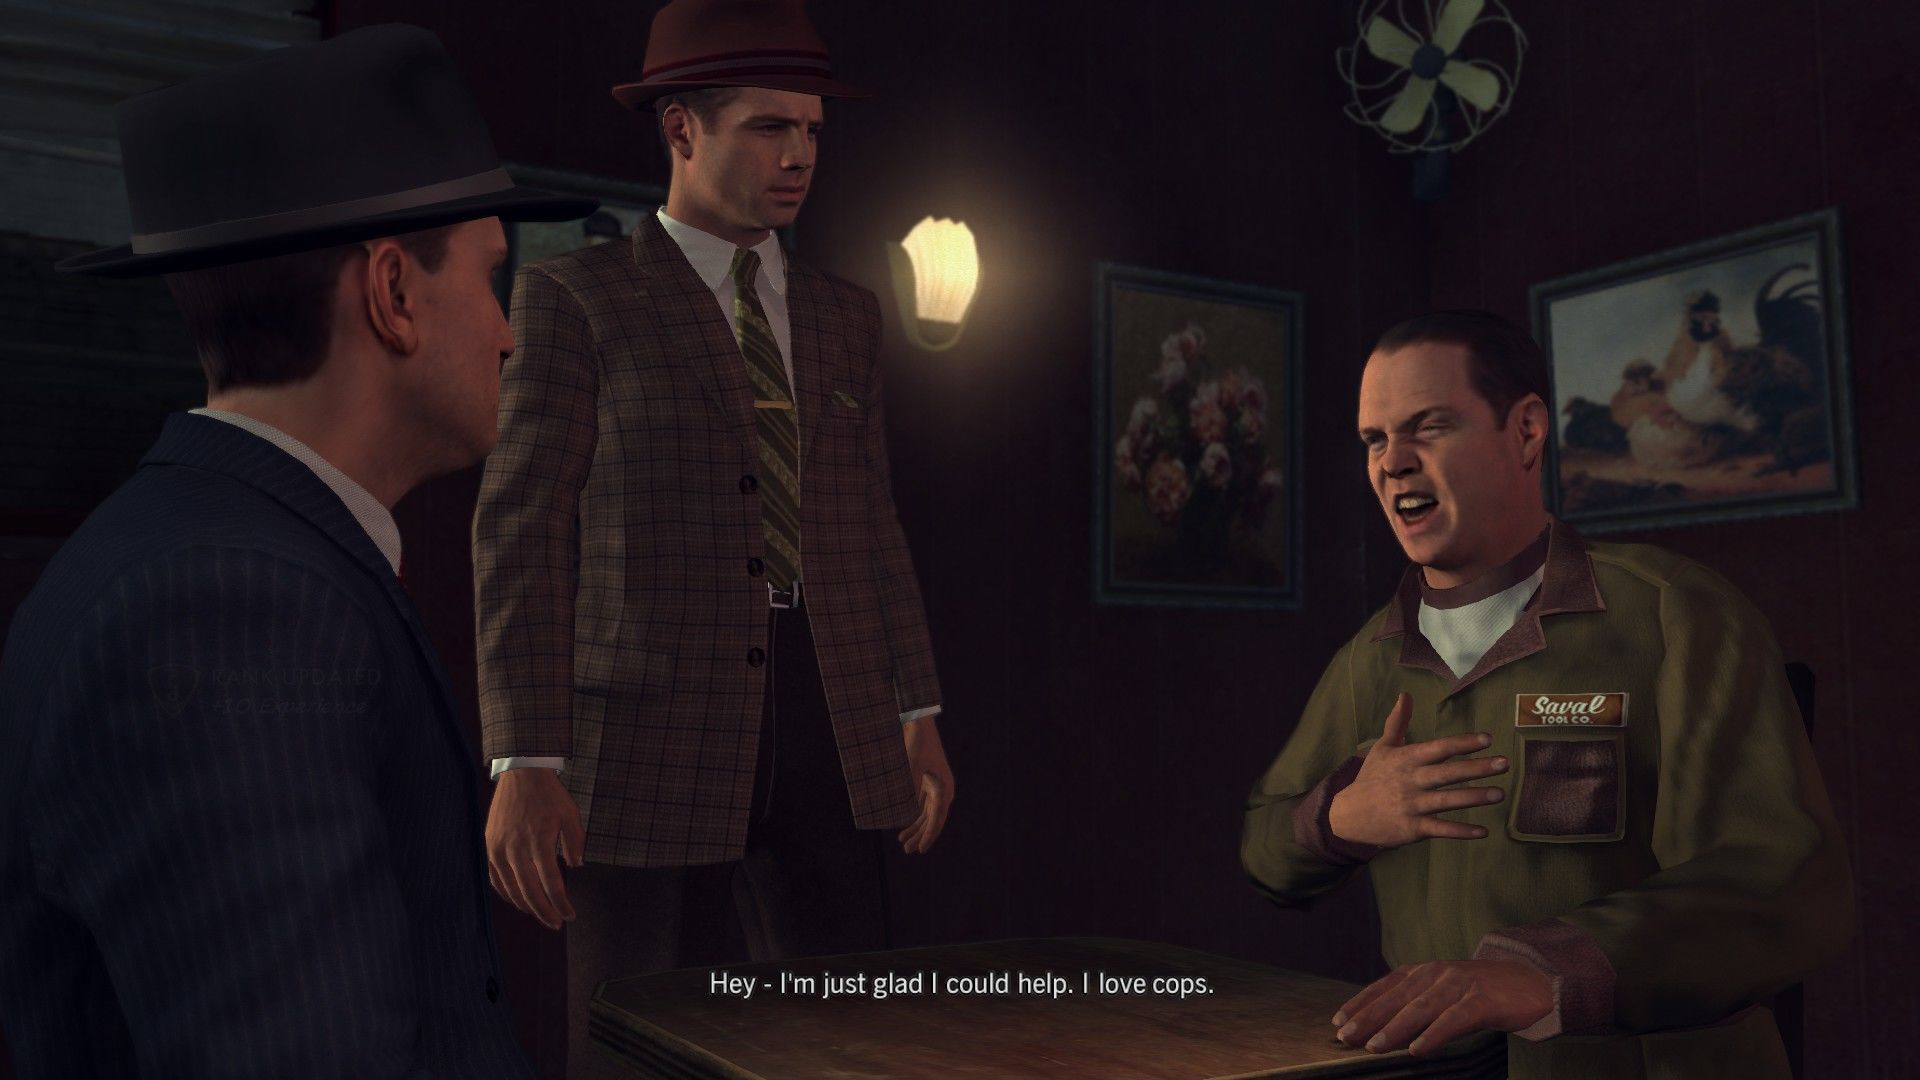 L.A. Noire: The Complete Edition Windows Though being right in the middle of uncanny valley, the animation and face capture systems leave other games in the dust.